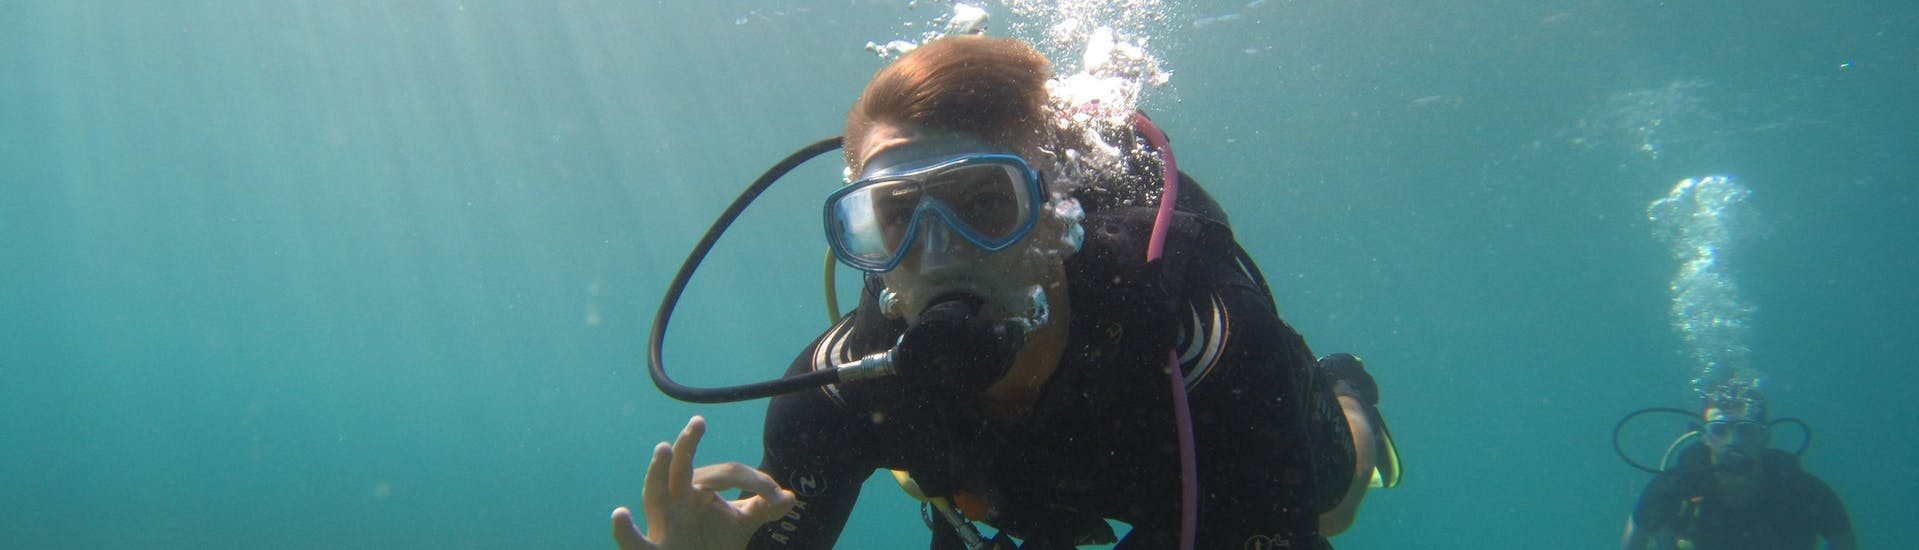 Discover Scuba Diving for Beginners in Rhodes with Lepia Dive Centre Rhodes - Hero image